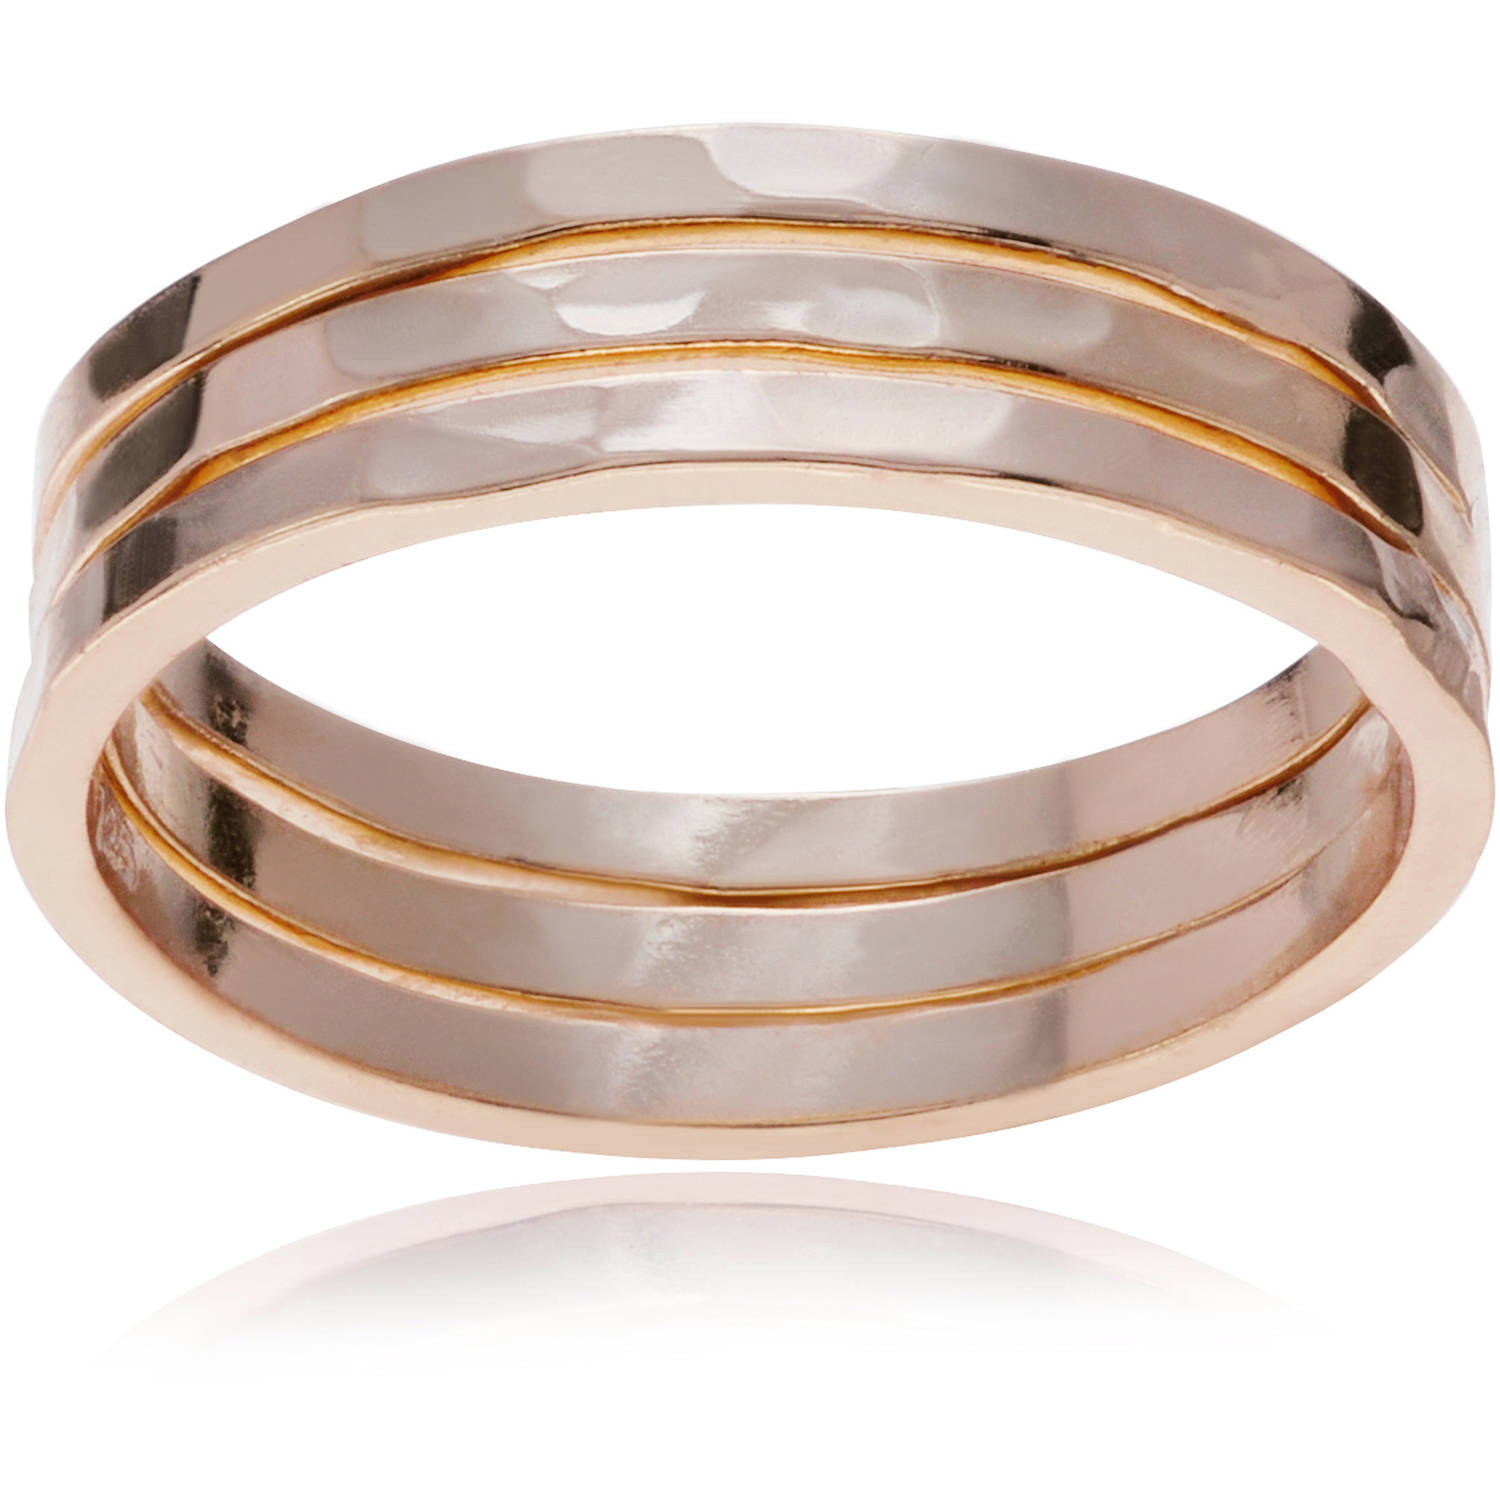 Brinley Co. Women's Sterling Silver Trio Hammered Fashion Ring Set, 3 Rings, Rose Gold